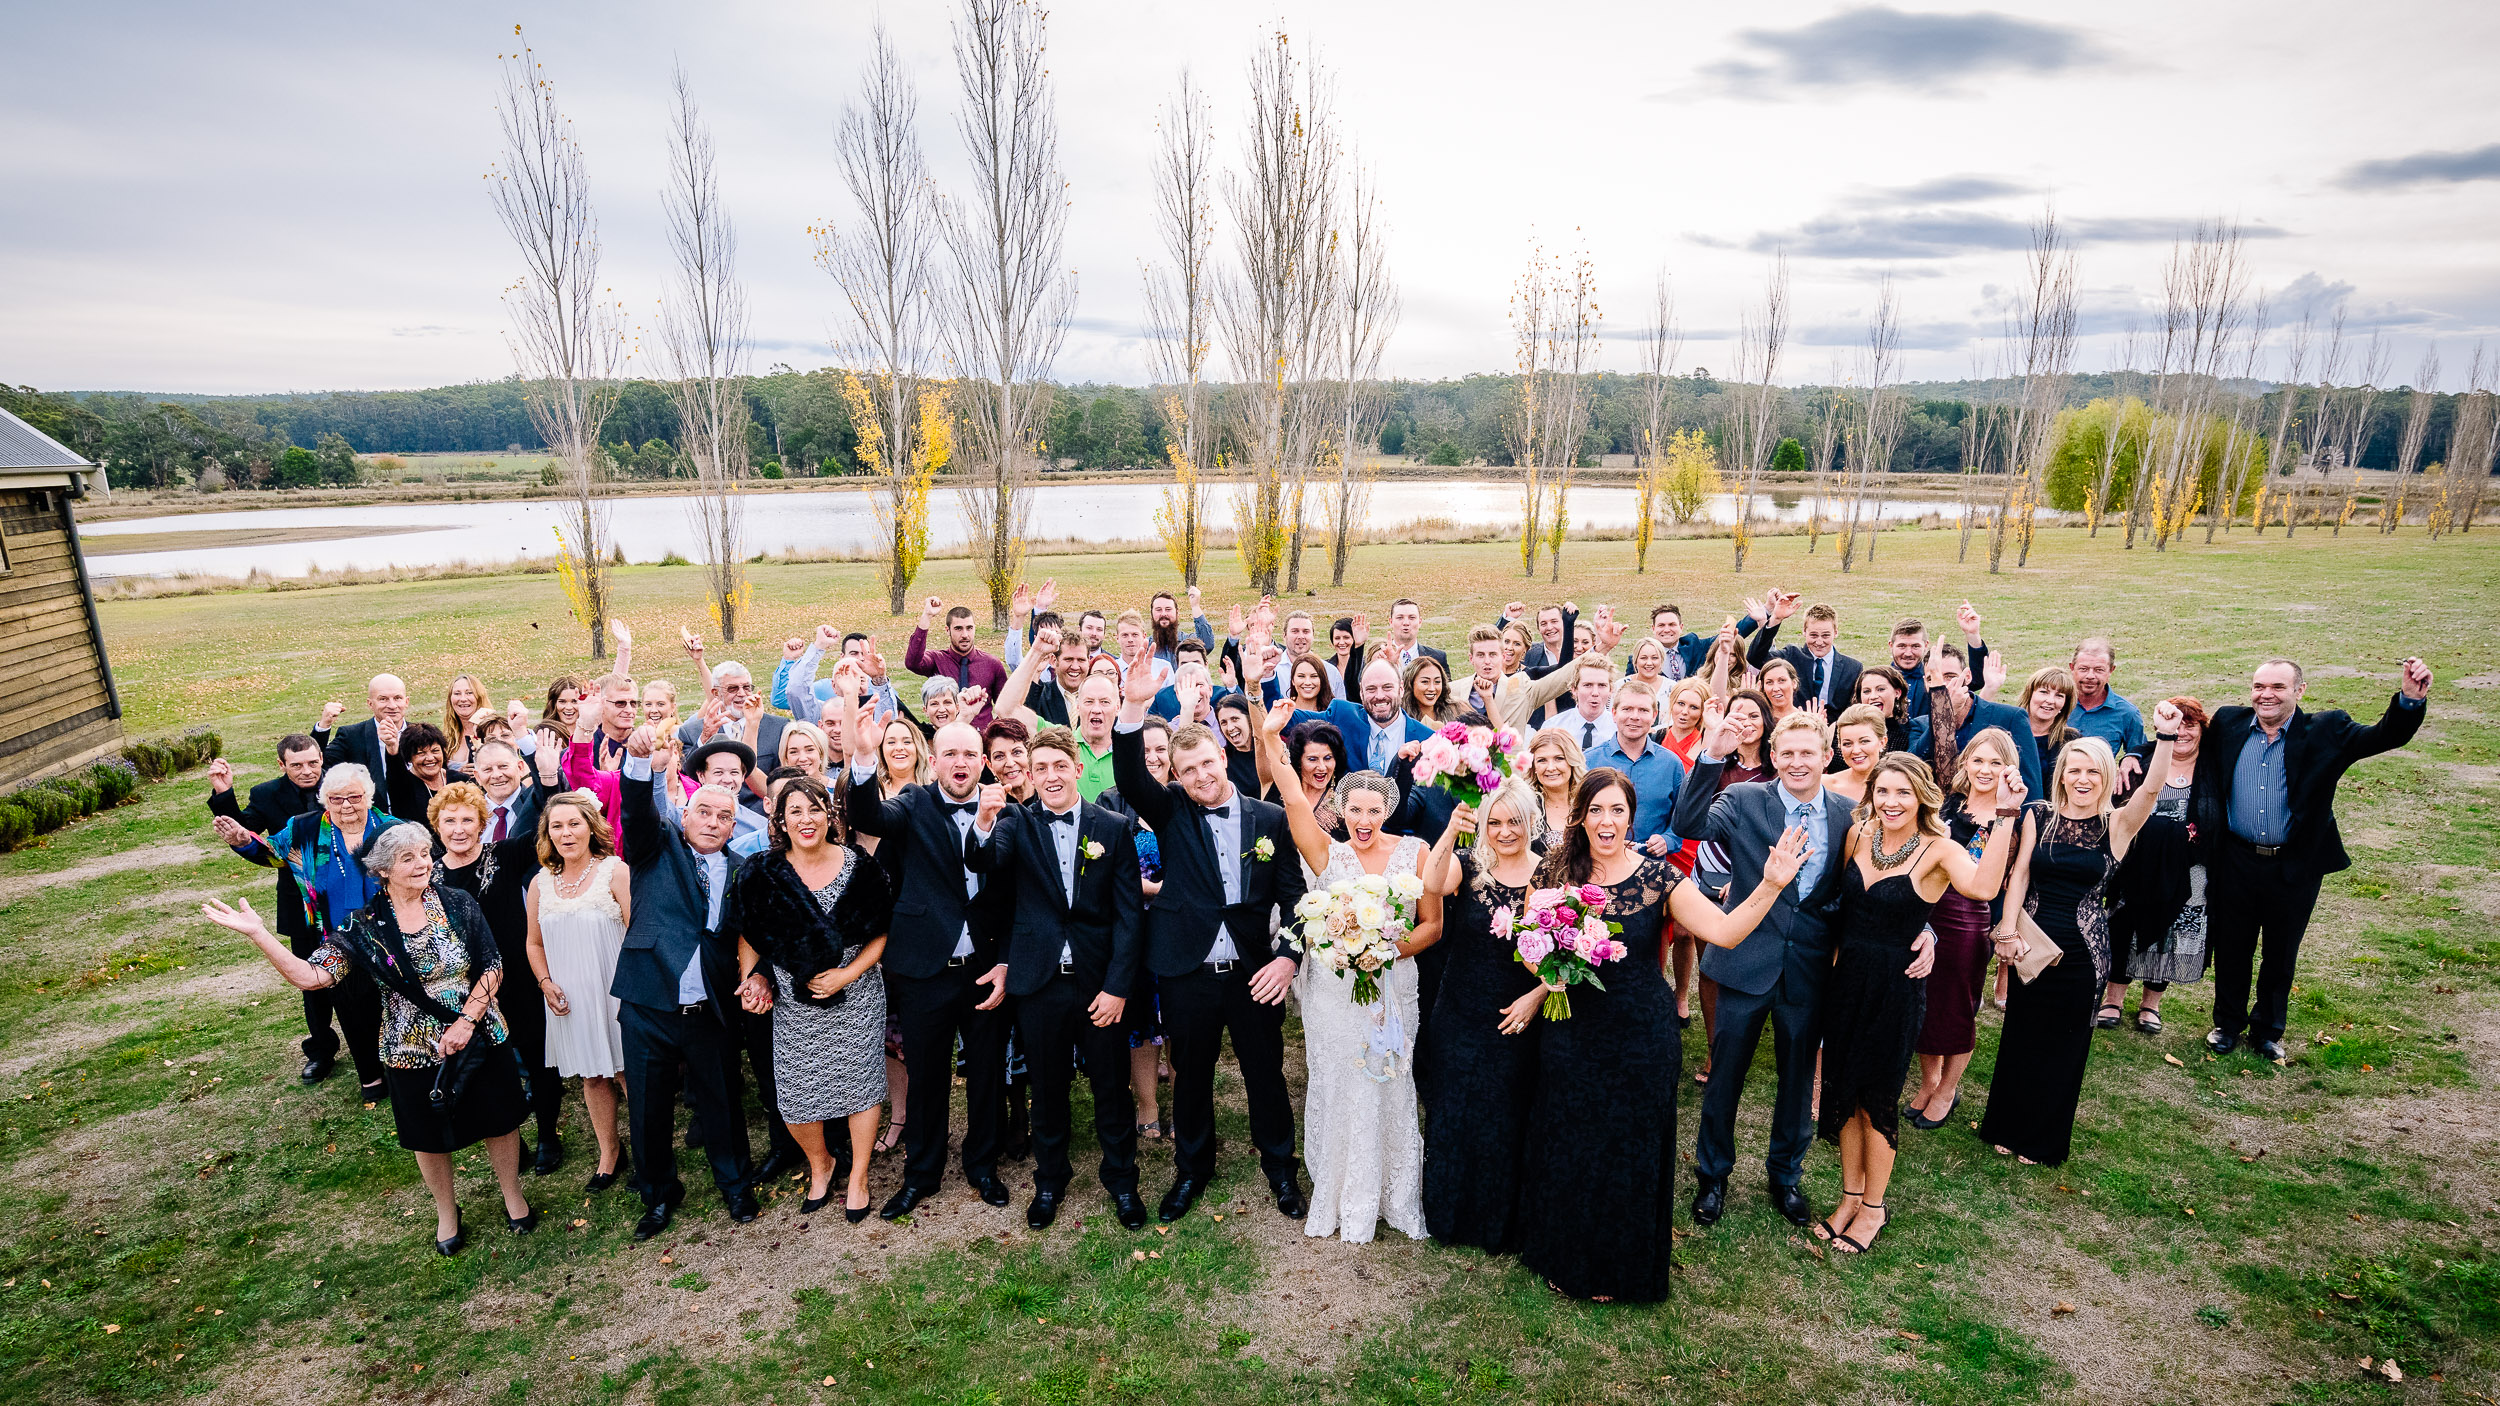 Sault Daylesford Wedding Photography Group Photo